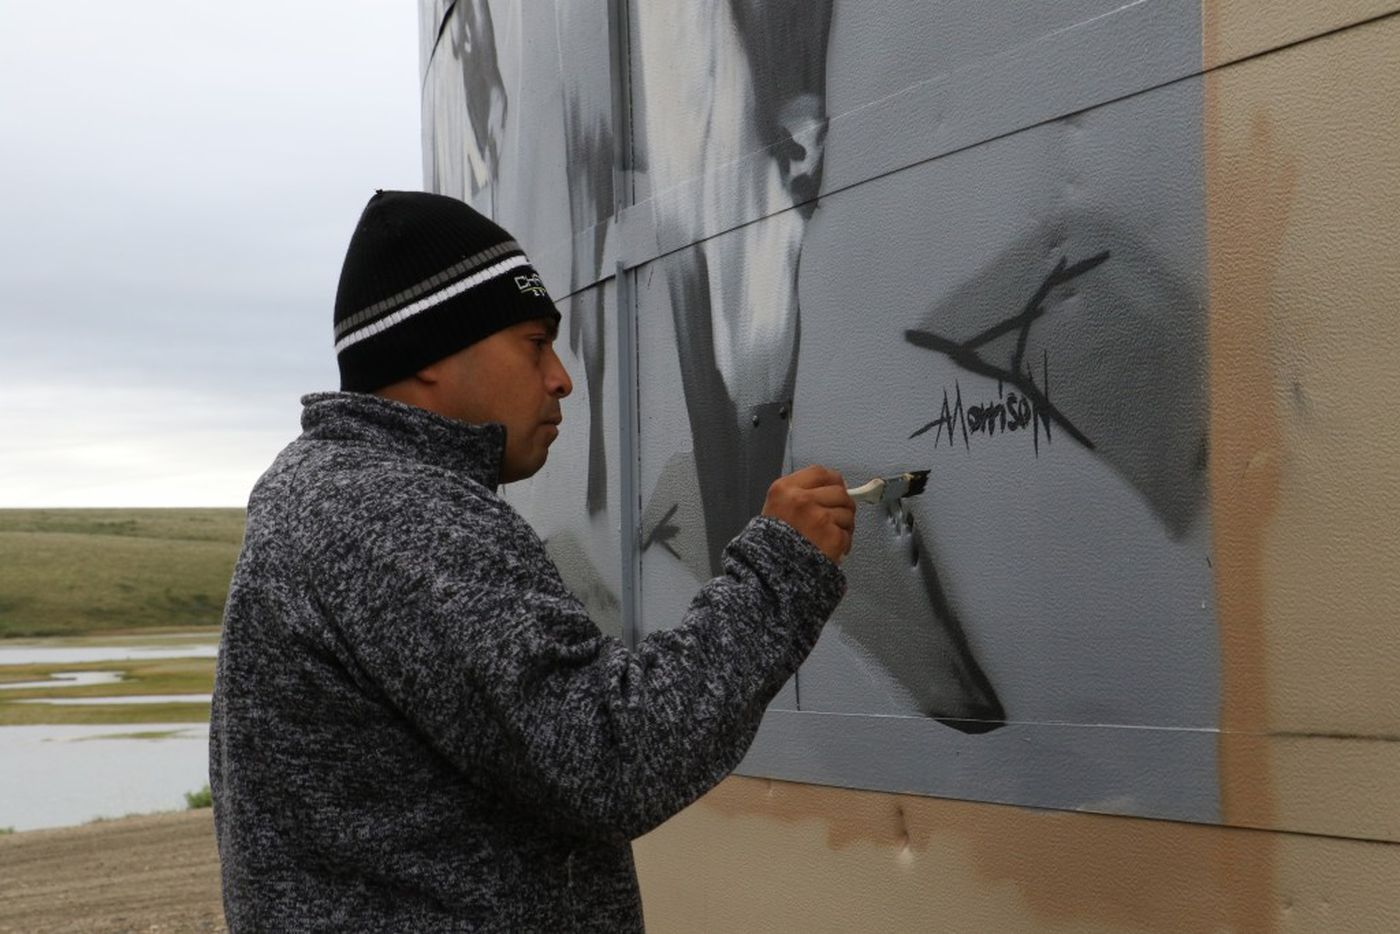 Artist Andrew Morrison signs the newest Water is Life mural in Deering, Alaska. (Photo by Bailey Berg / Alaska Dispatch News)